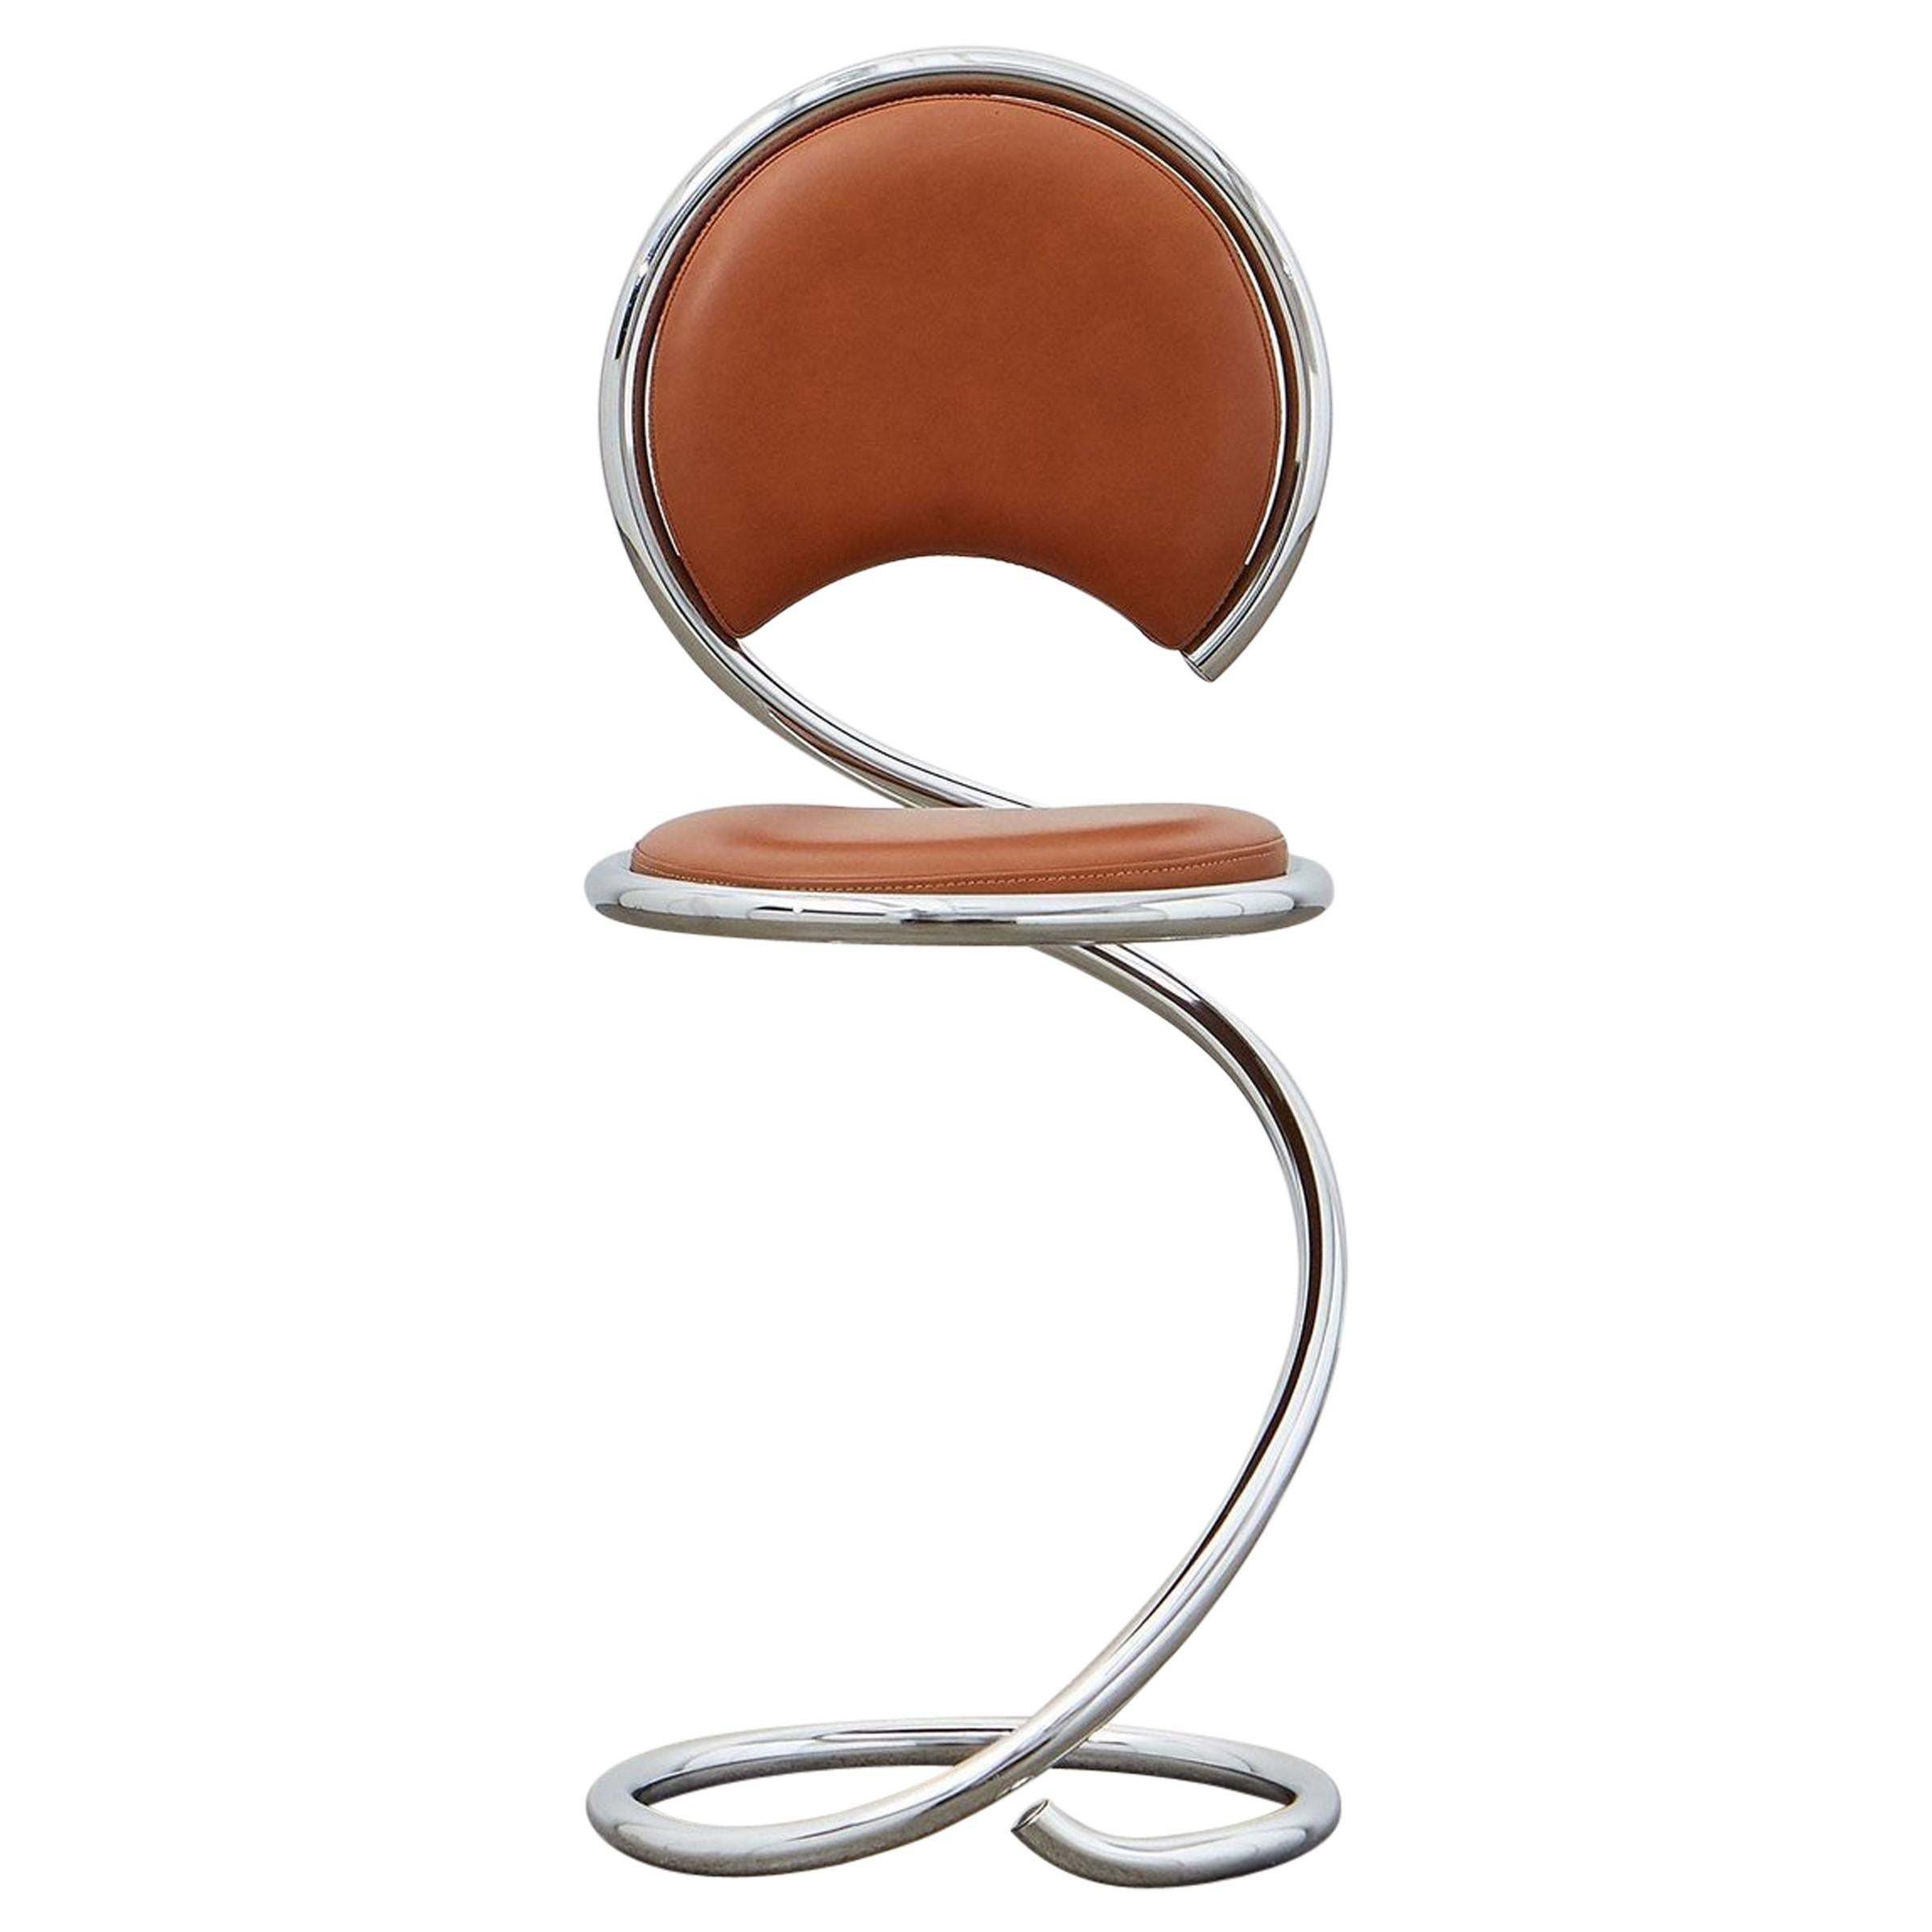 PH Snake Chair, Chrome, Leather Extreme Walnut, Leather Upholstery, Visible Tube